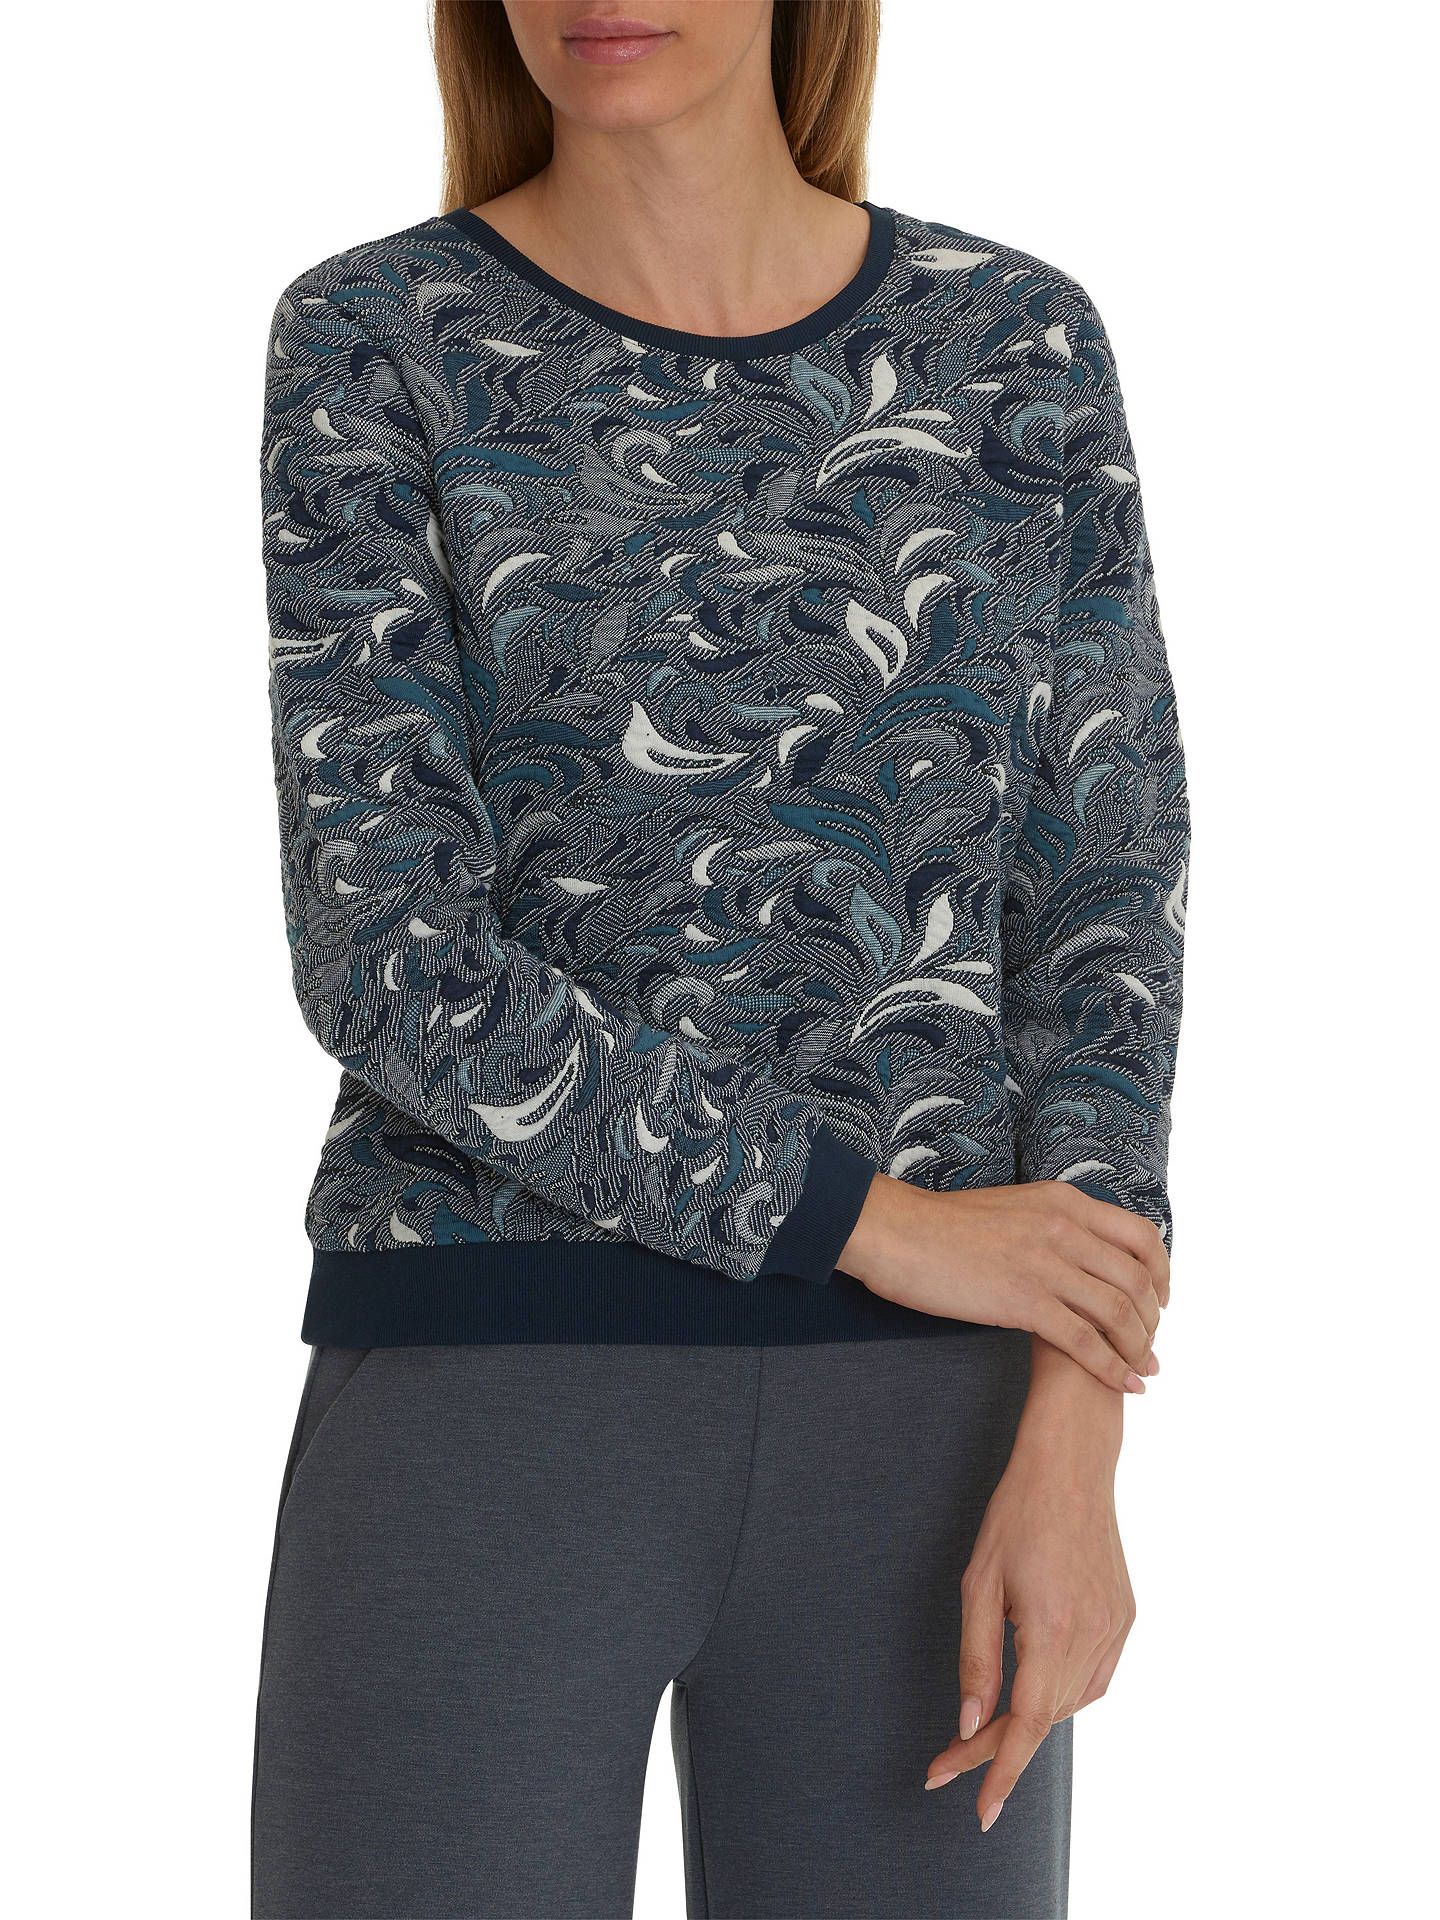 BuyBetty Barclay Tapestry Jumper, Dark Blue/Petrol, 10 Online at johnlewis.com